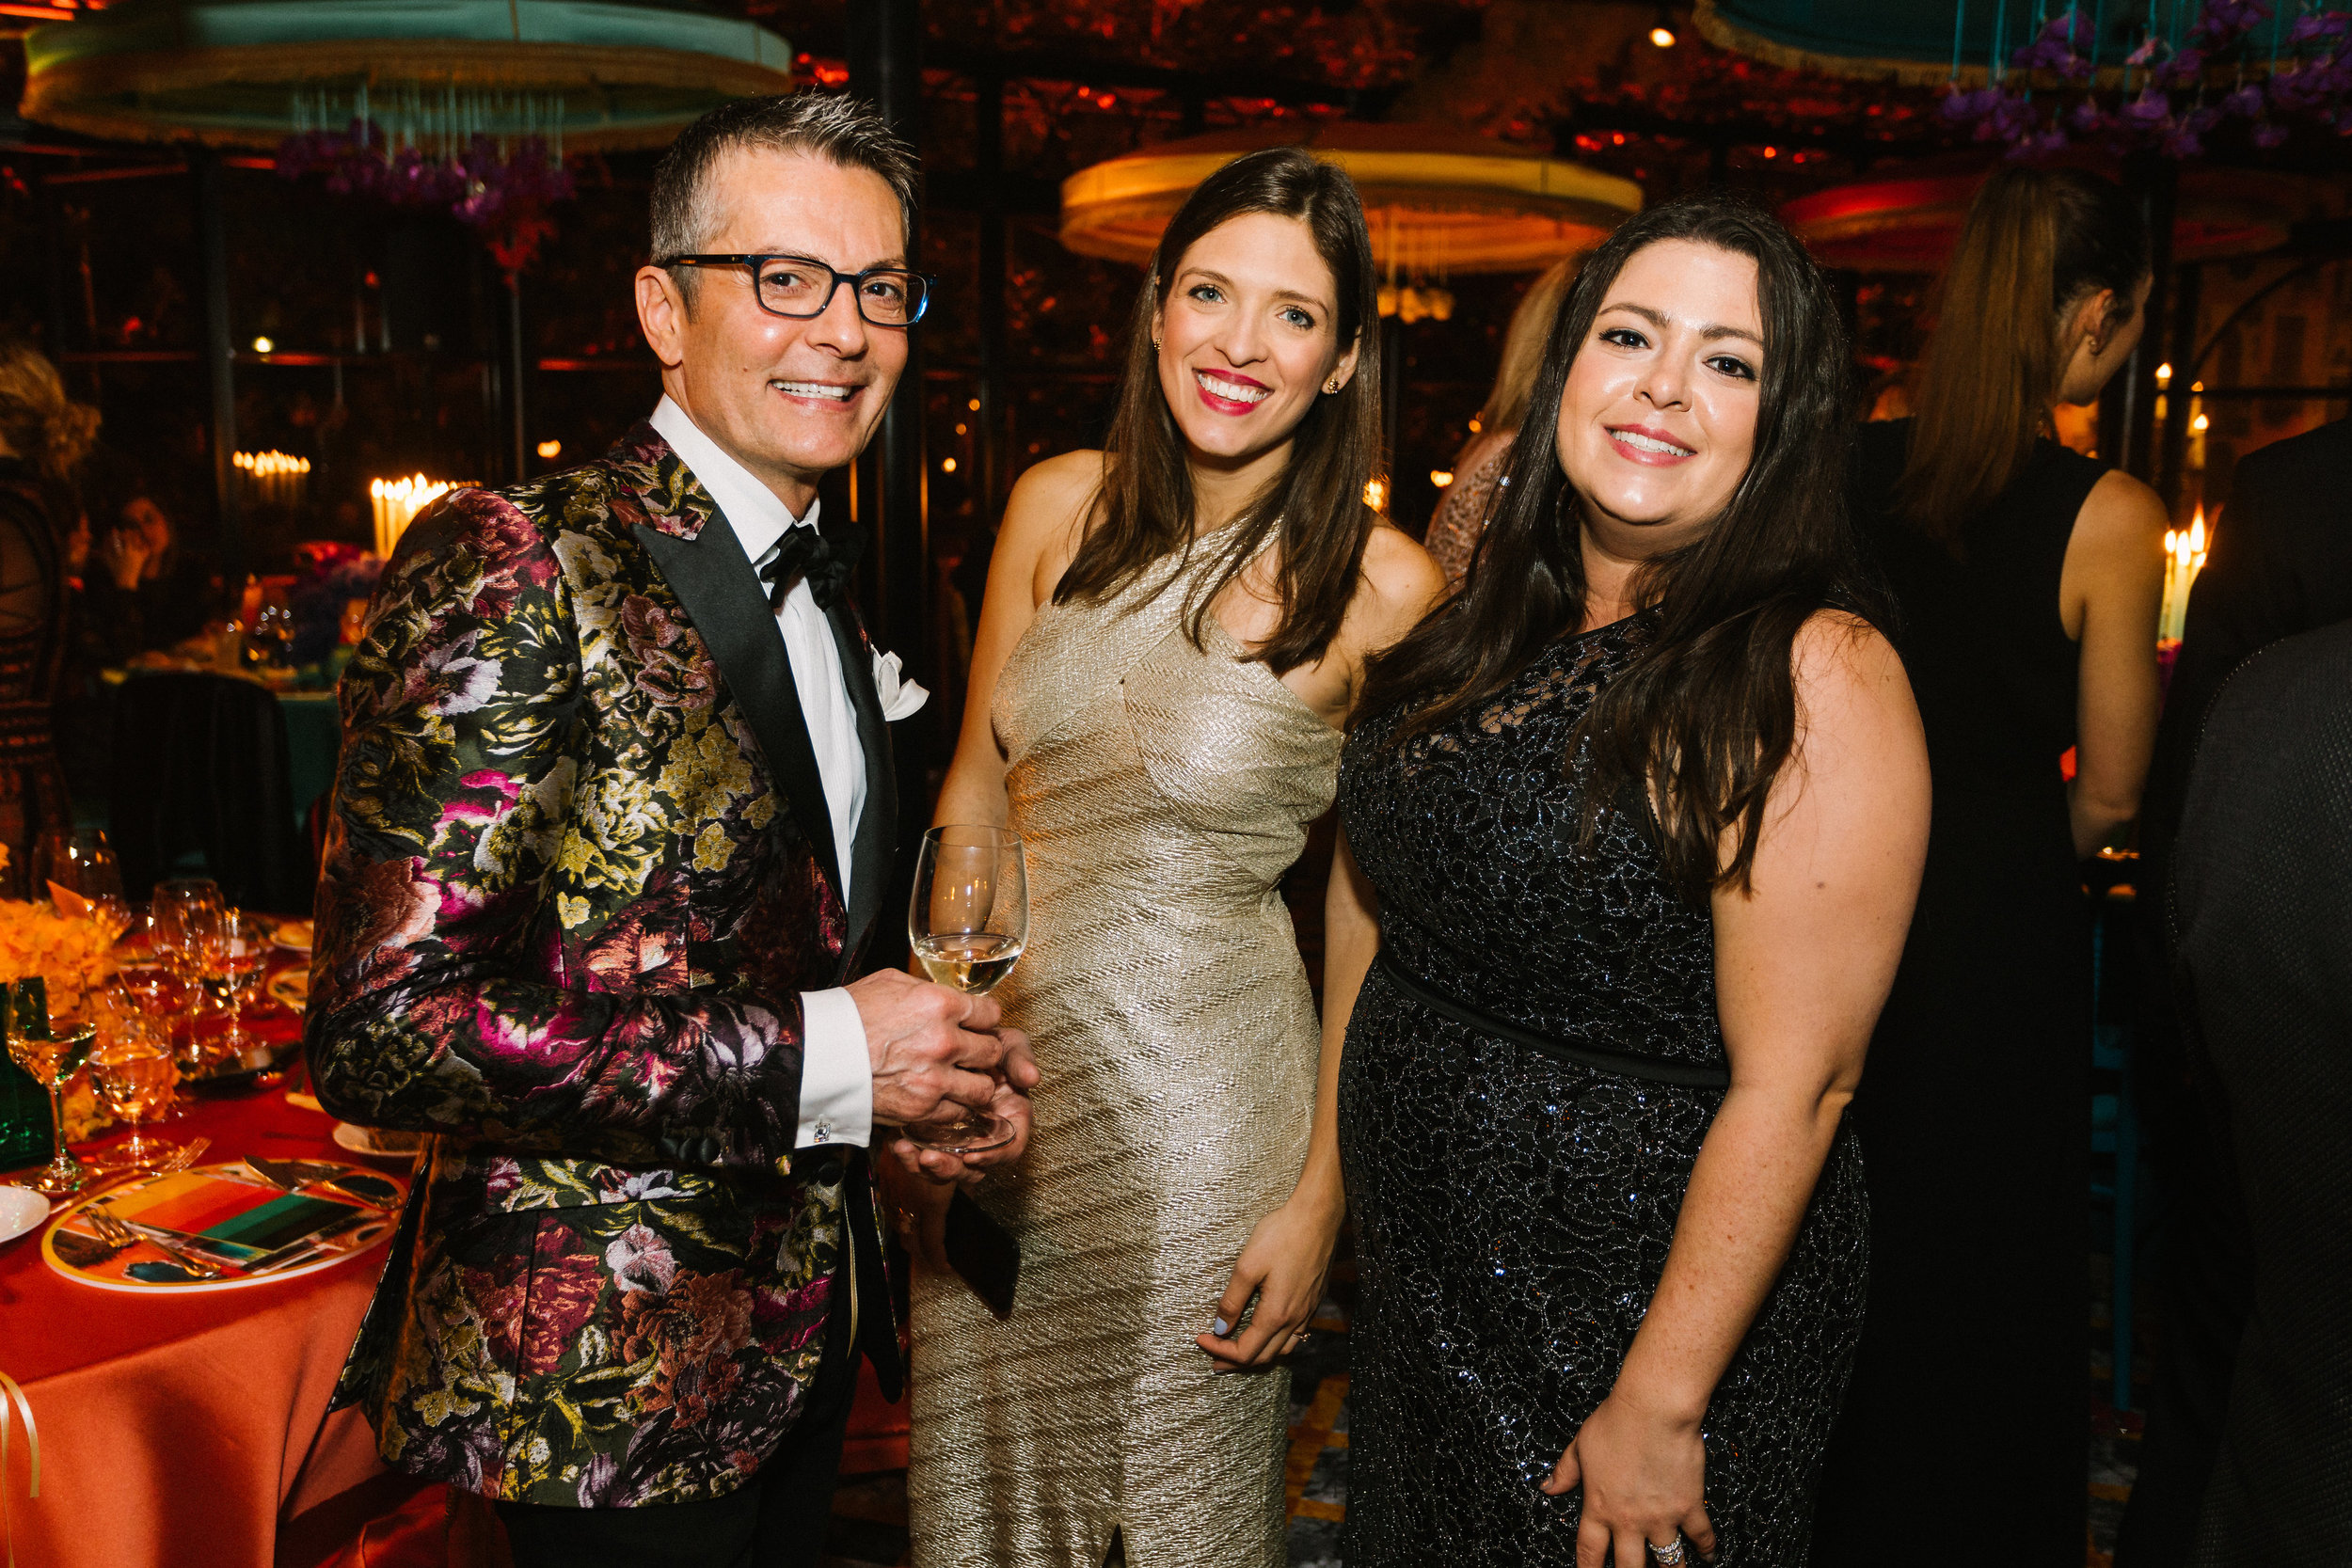 Randy Fenoli also was a bit metallic! Photo by Betsi Ewing Studio.